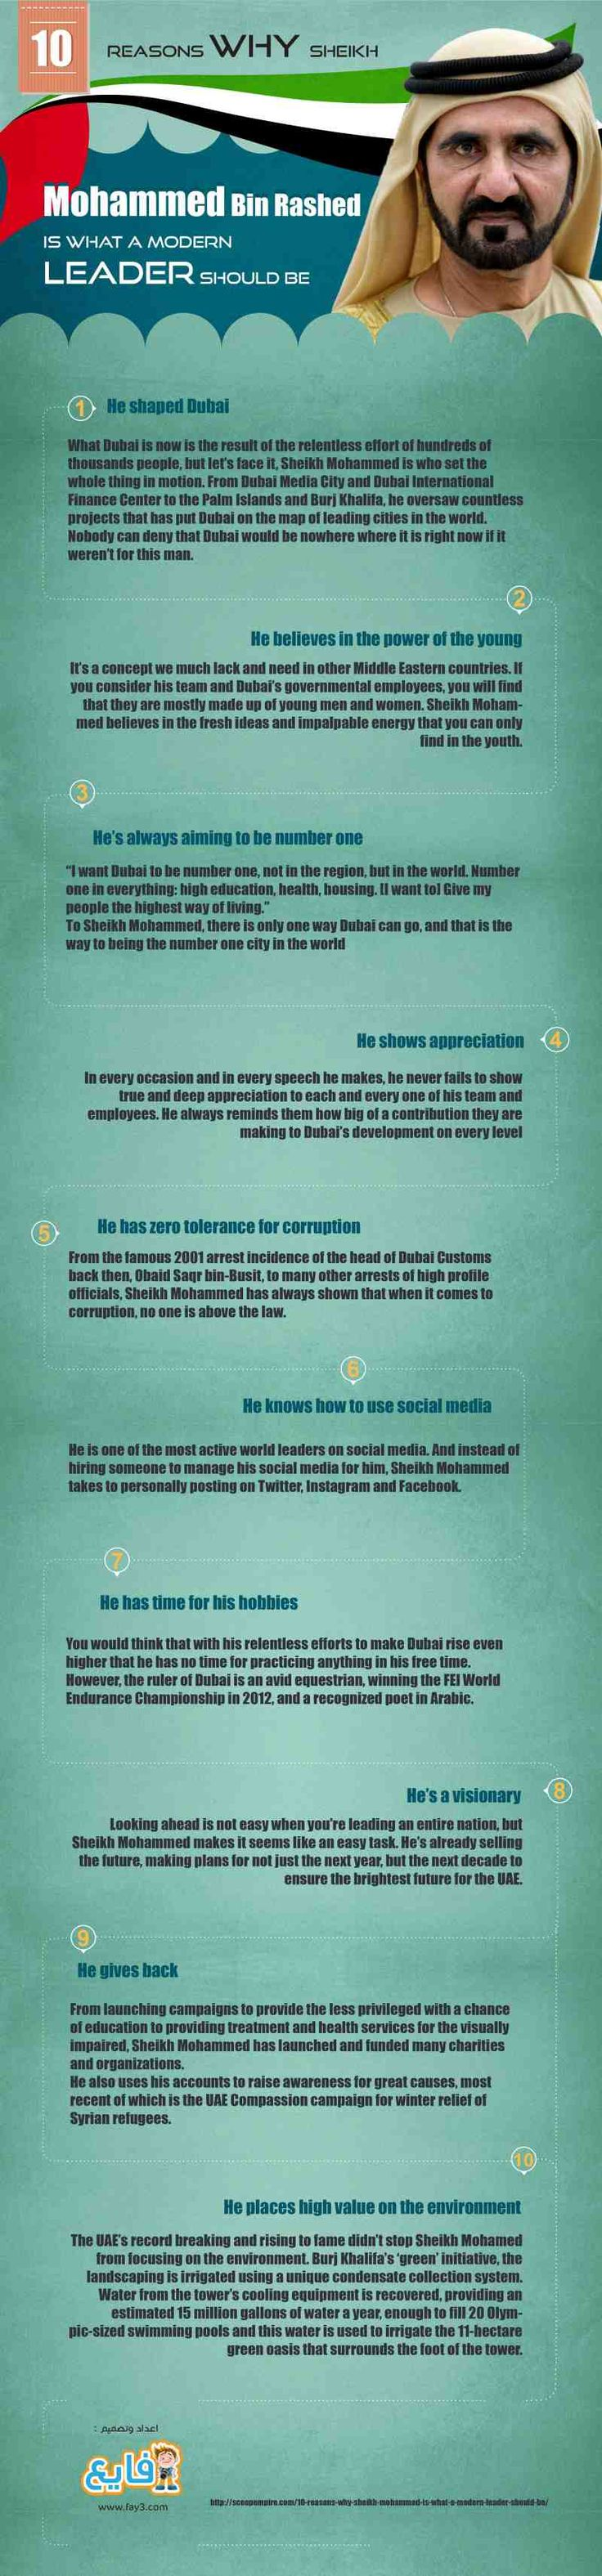 Ten Reasons Why Sheikh Mohammed Bin Rashed is What a Modern Leader should be #infographic